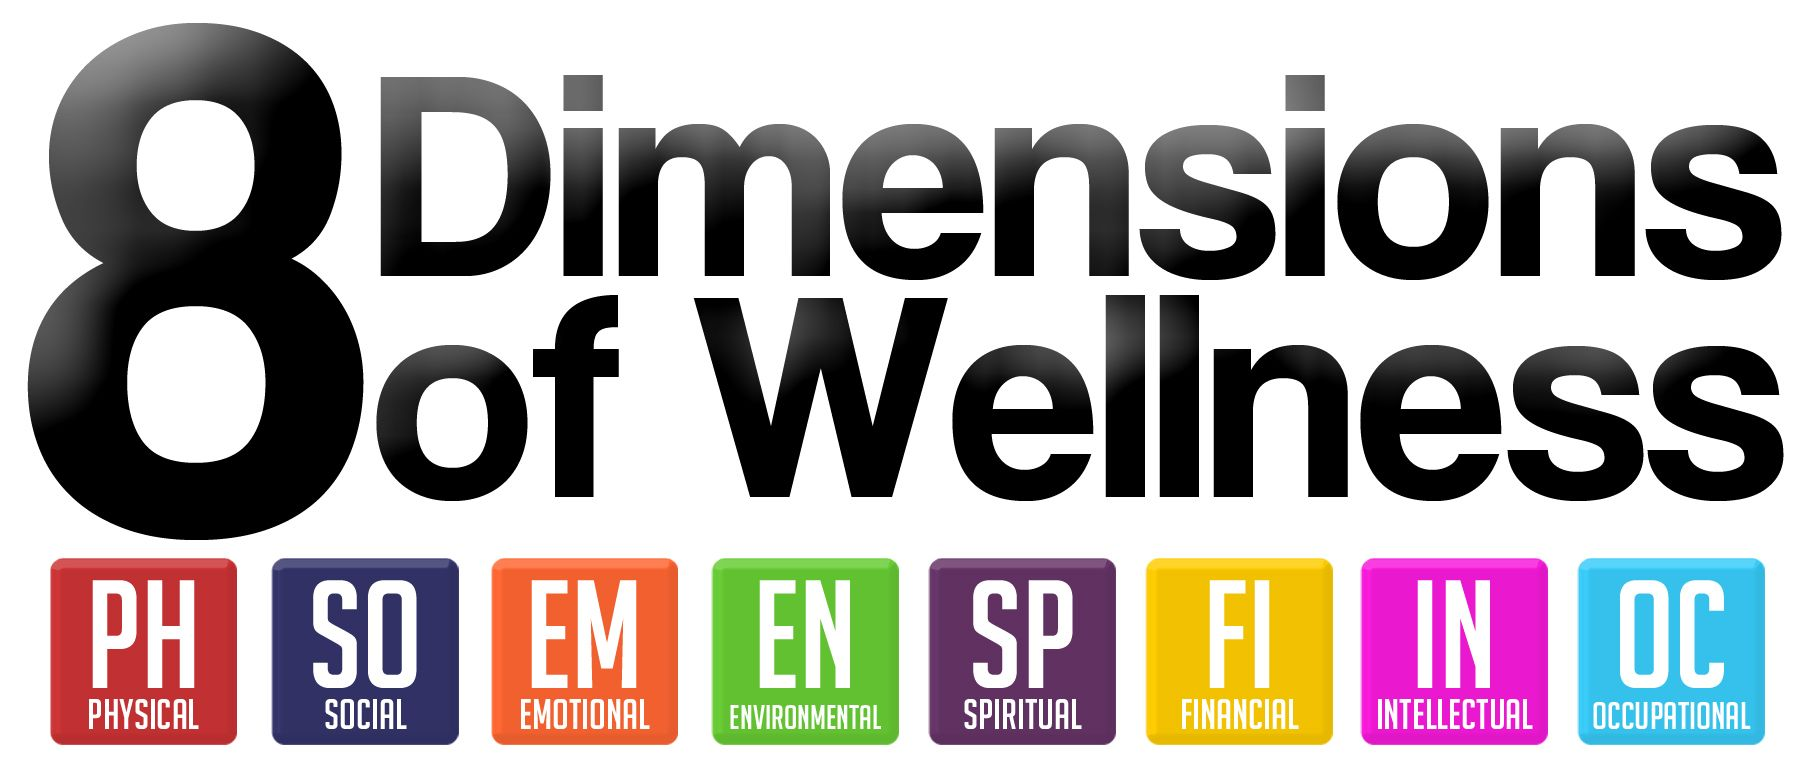 8 Dimensions Of Health And Wellness